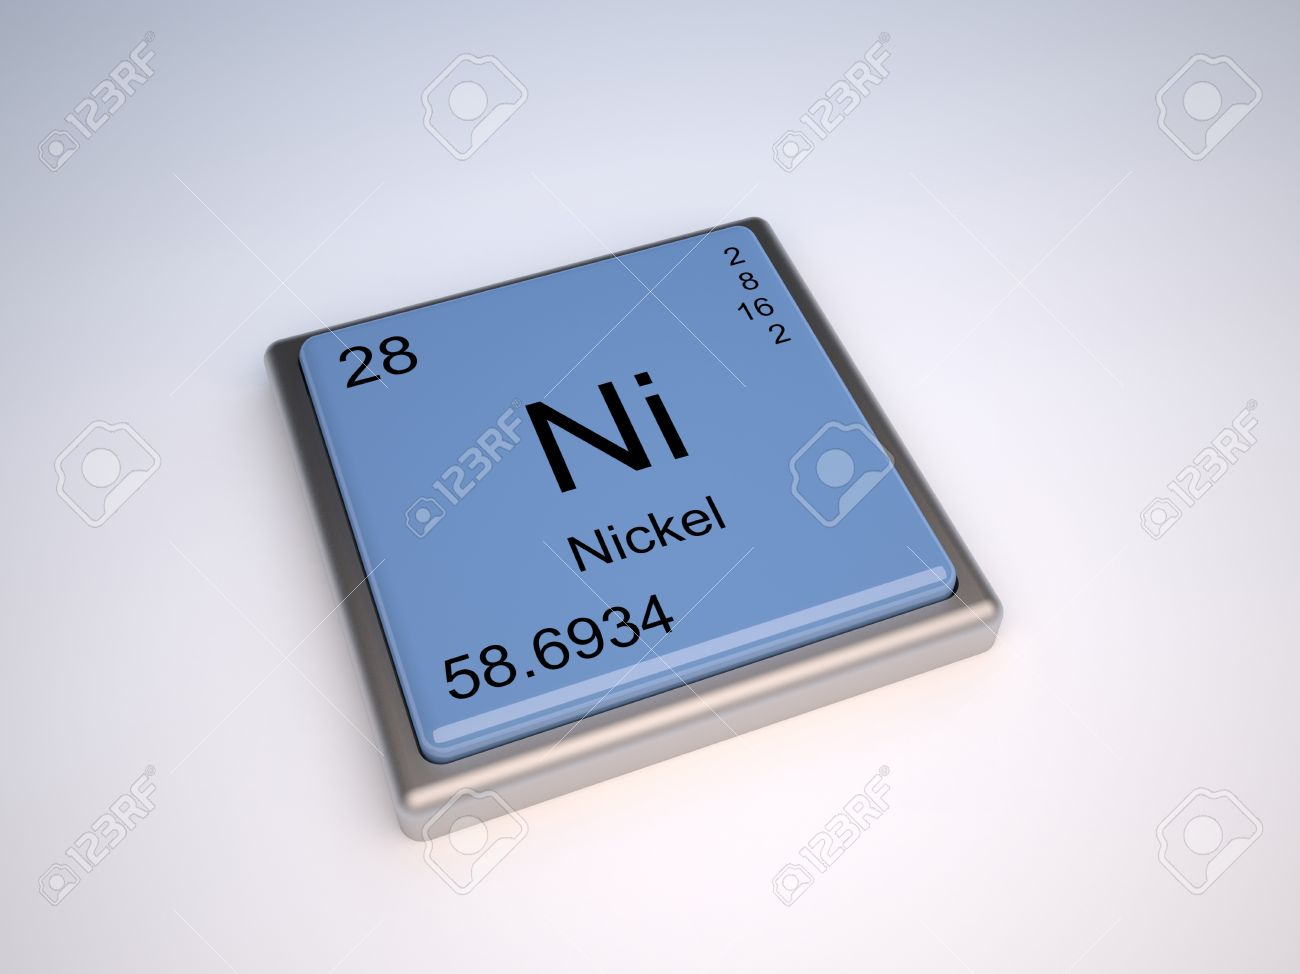 Nickel chemical element of the periodic table with symbol ni stock nickel chemical element of the periodic table with symbol ni stock photo 9257135 buycottarizona Images